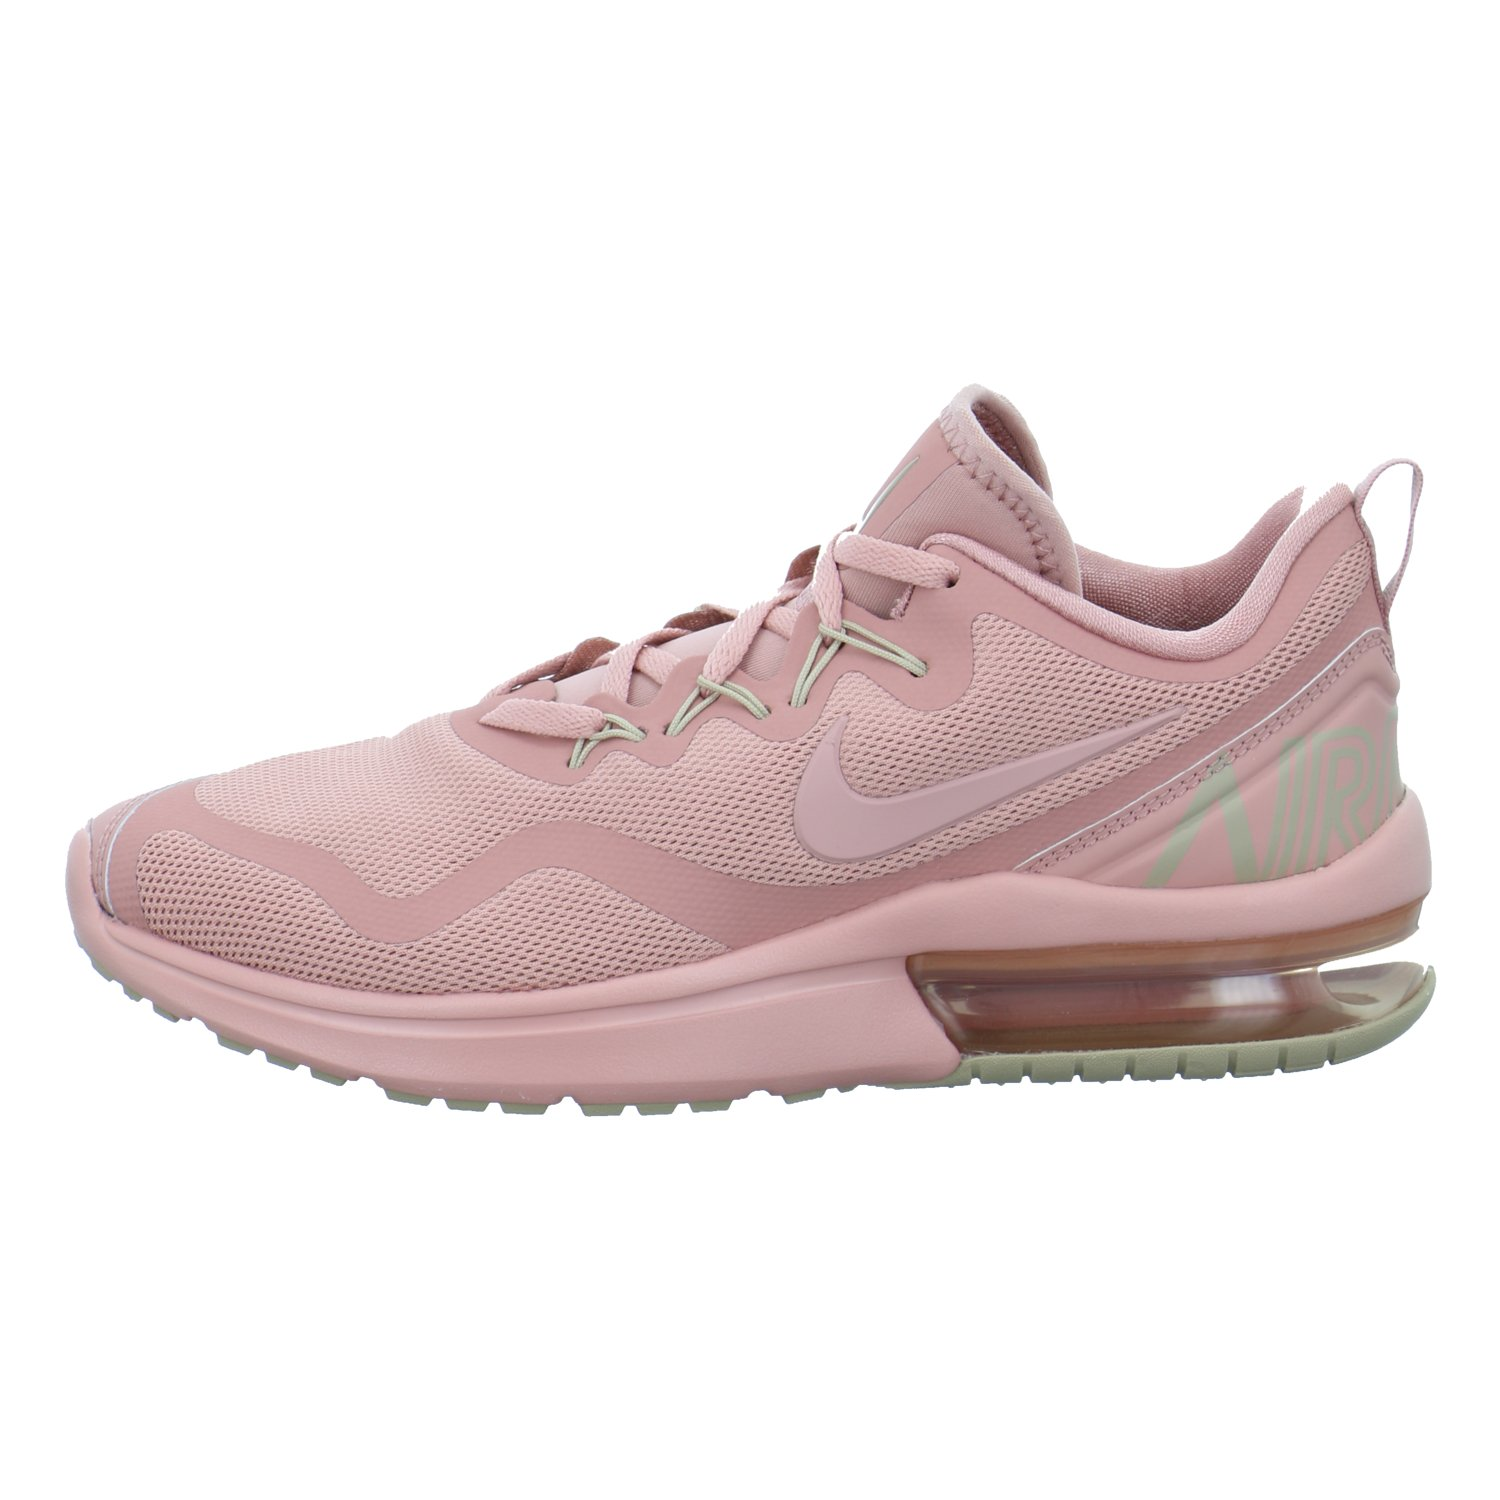 a3cf43354a Nike Women's WMNS Air Max Fury Competition Running Shoes: Amazon.co.uk:  Shoes & Bags